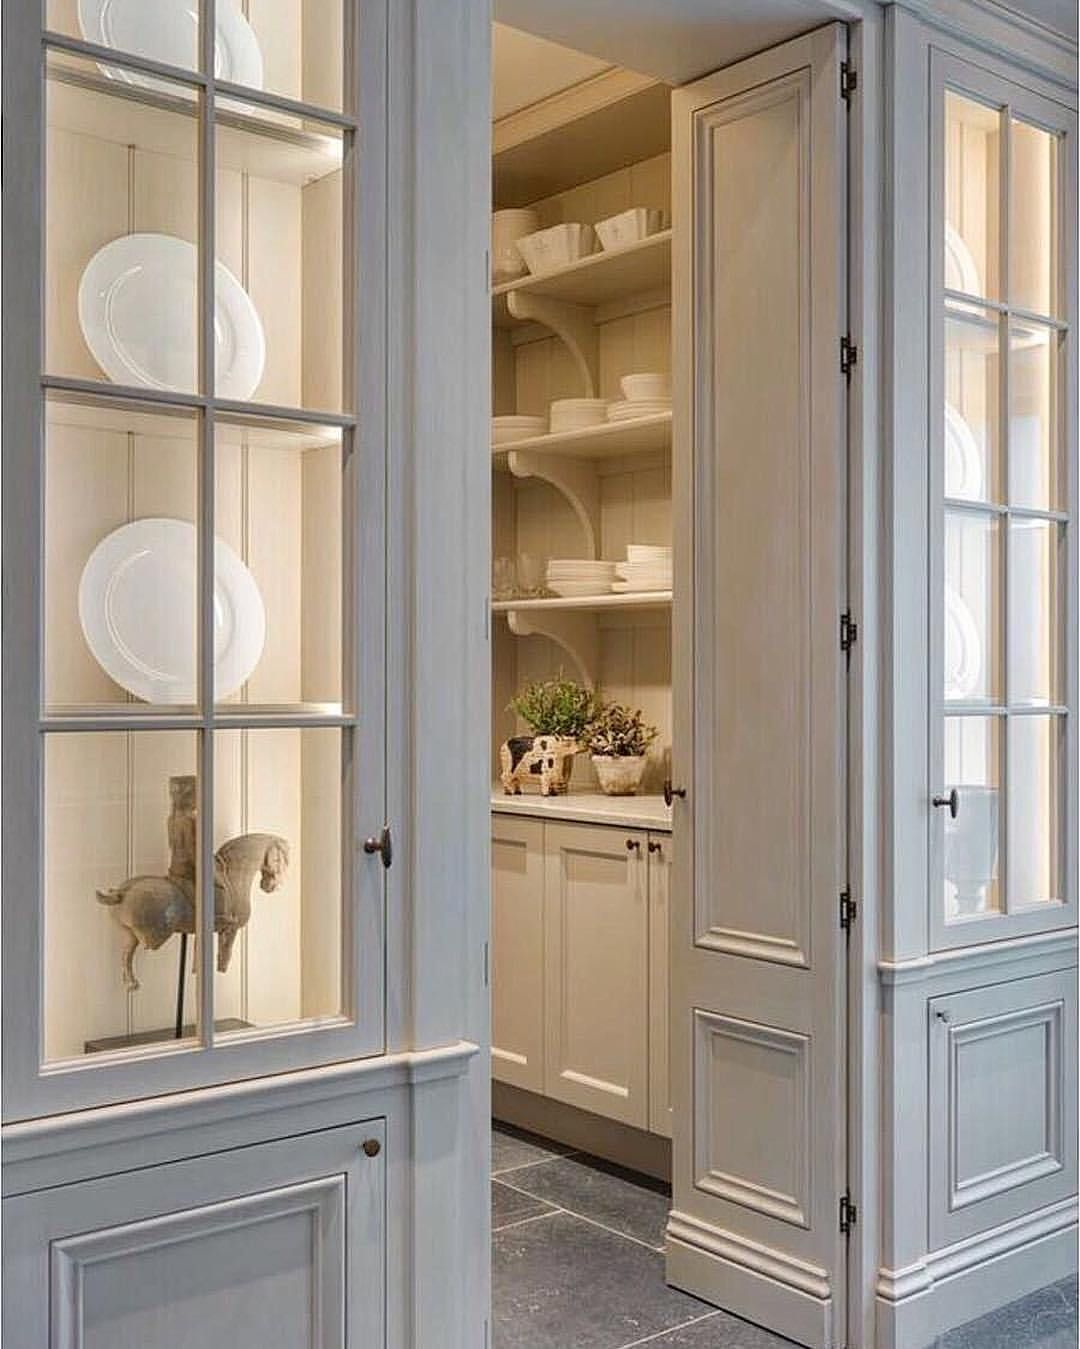 Dining Room Built In Cabinets And Storage Design (12 images